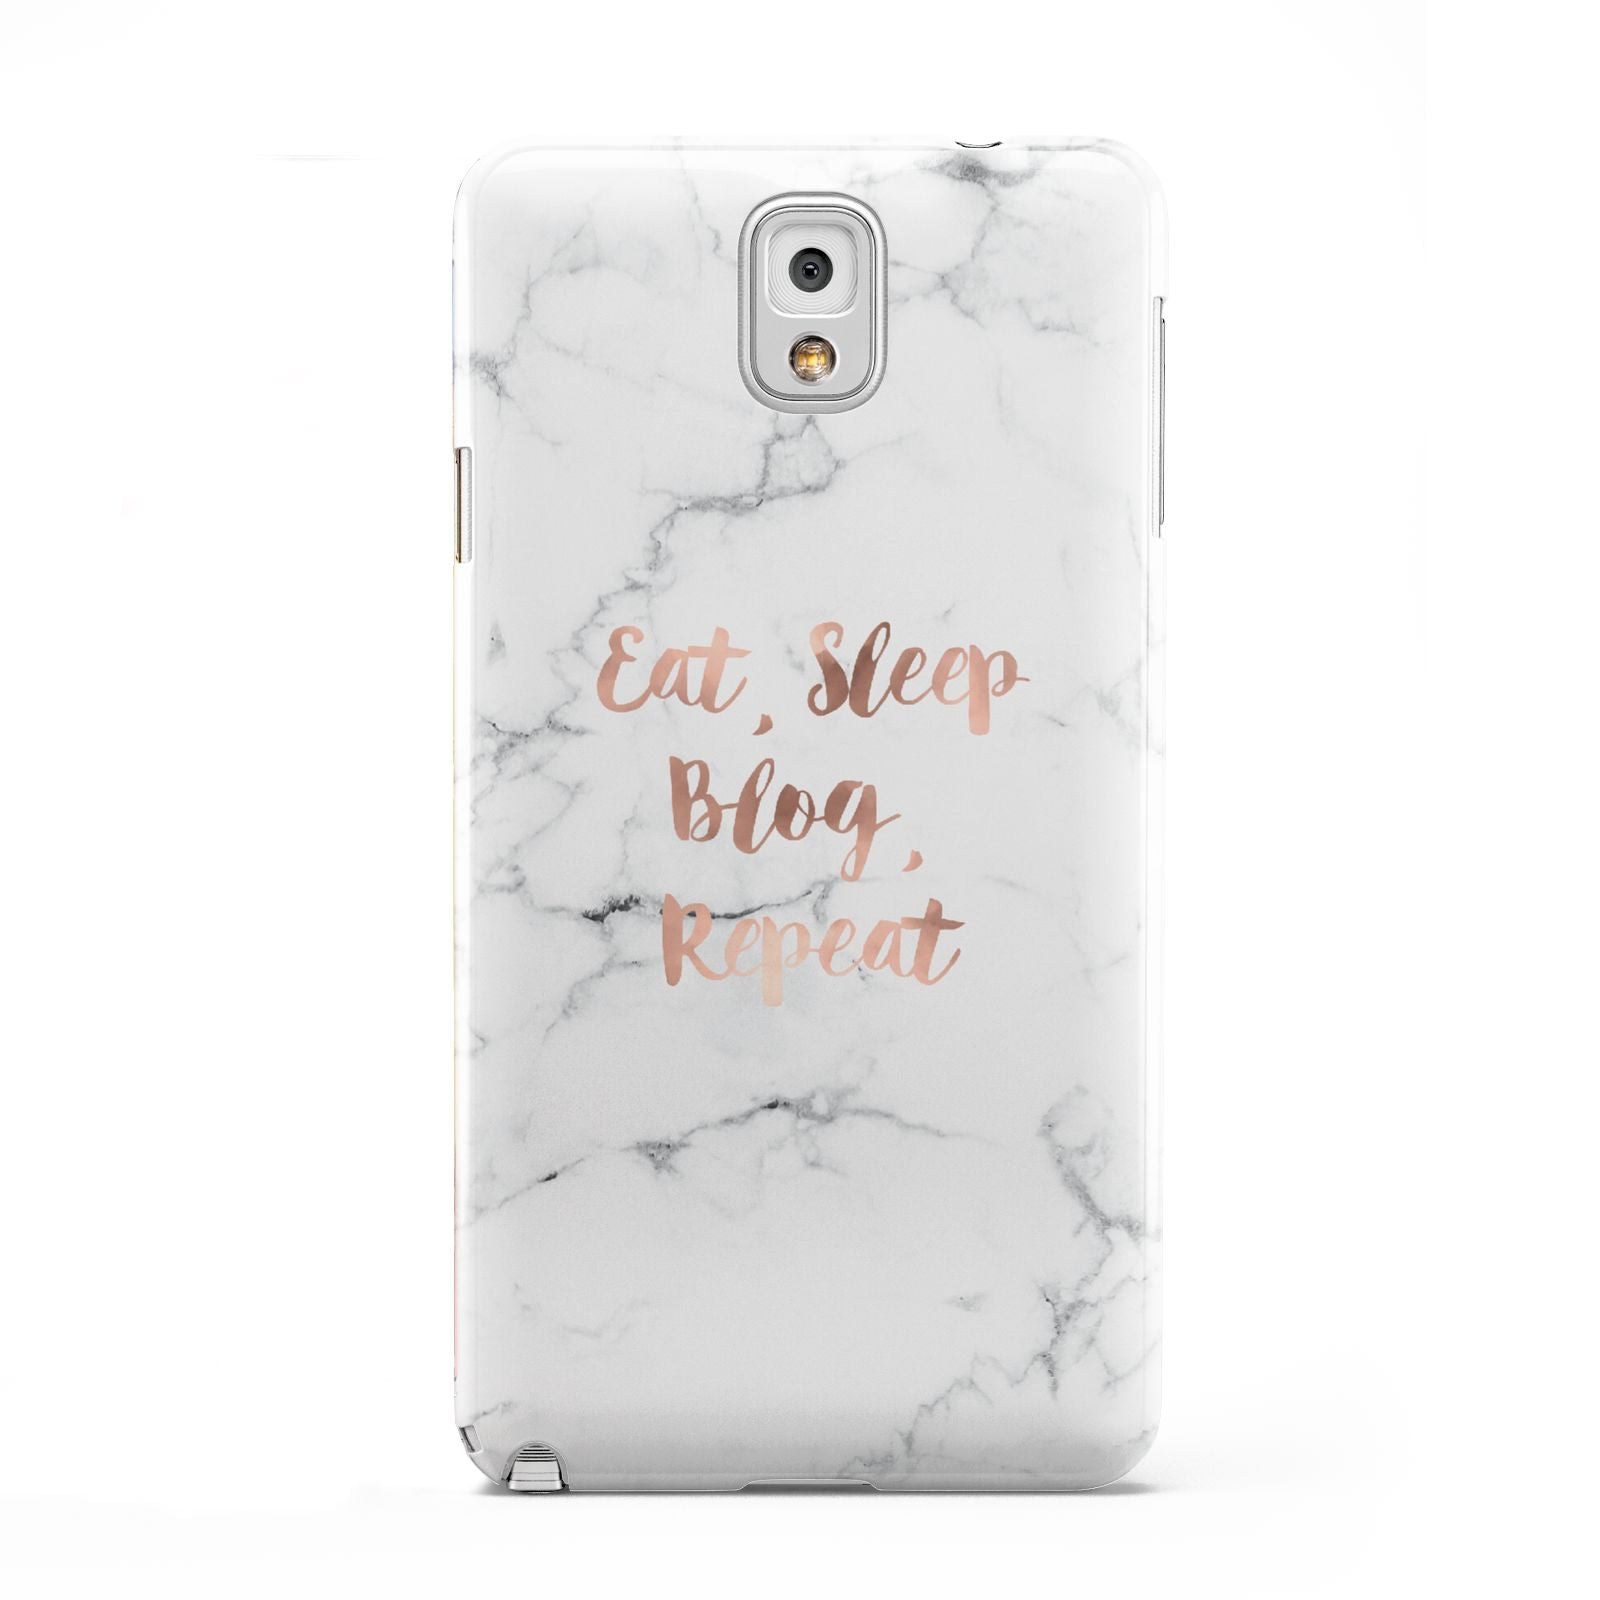 Eat Sleep Blog Repeat Marble Effect Samsung Galaxy Note 3 Case